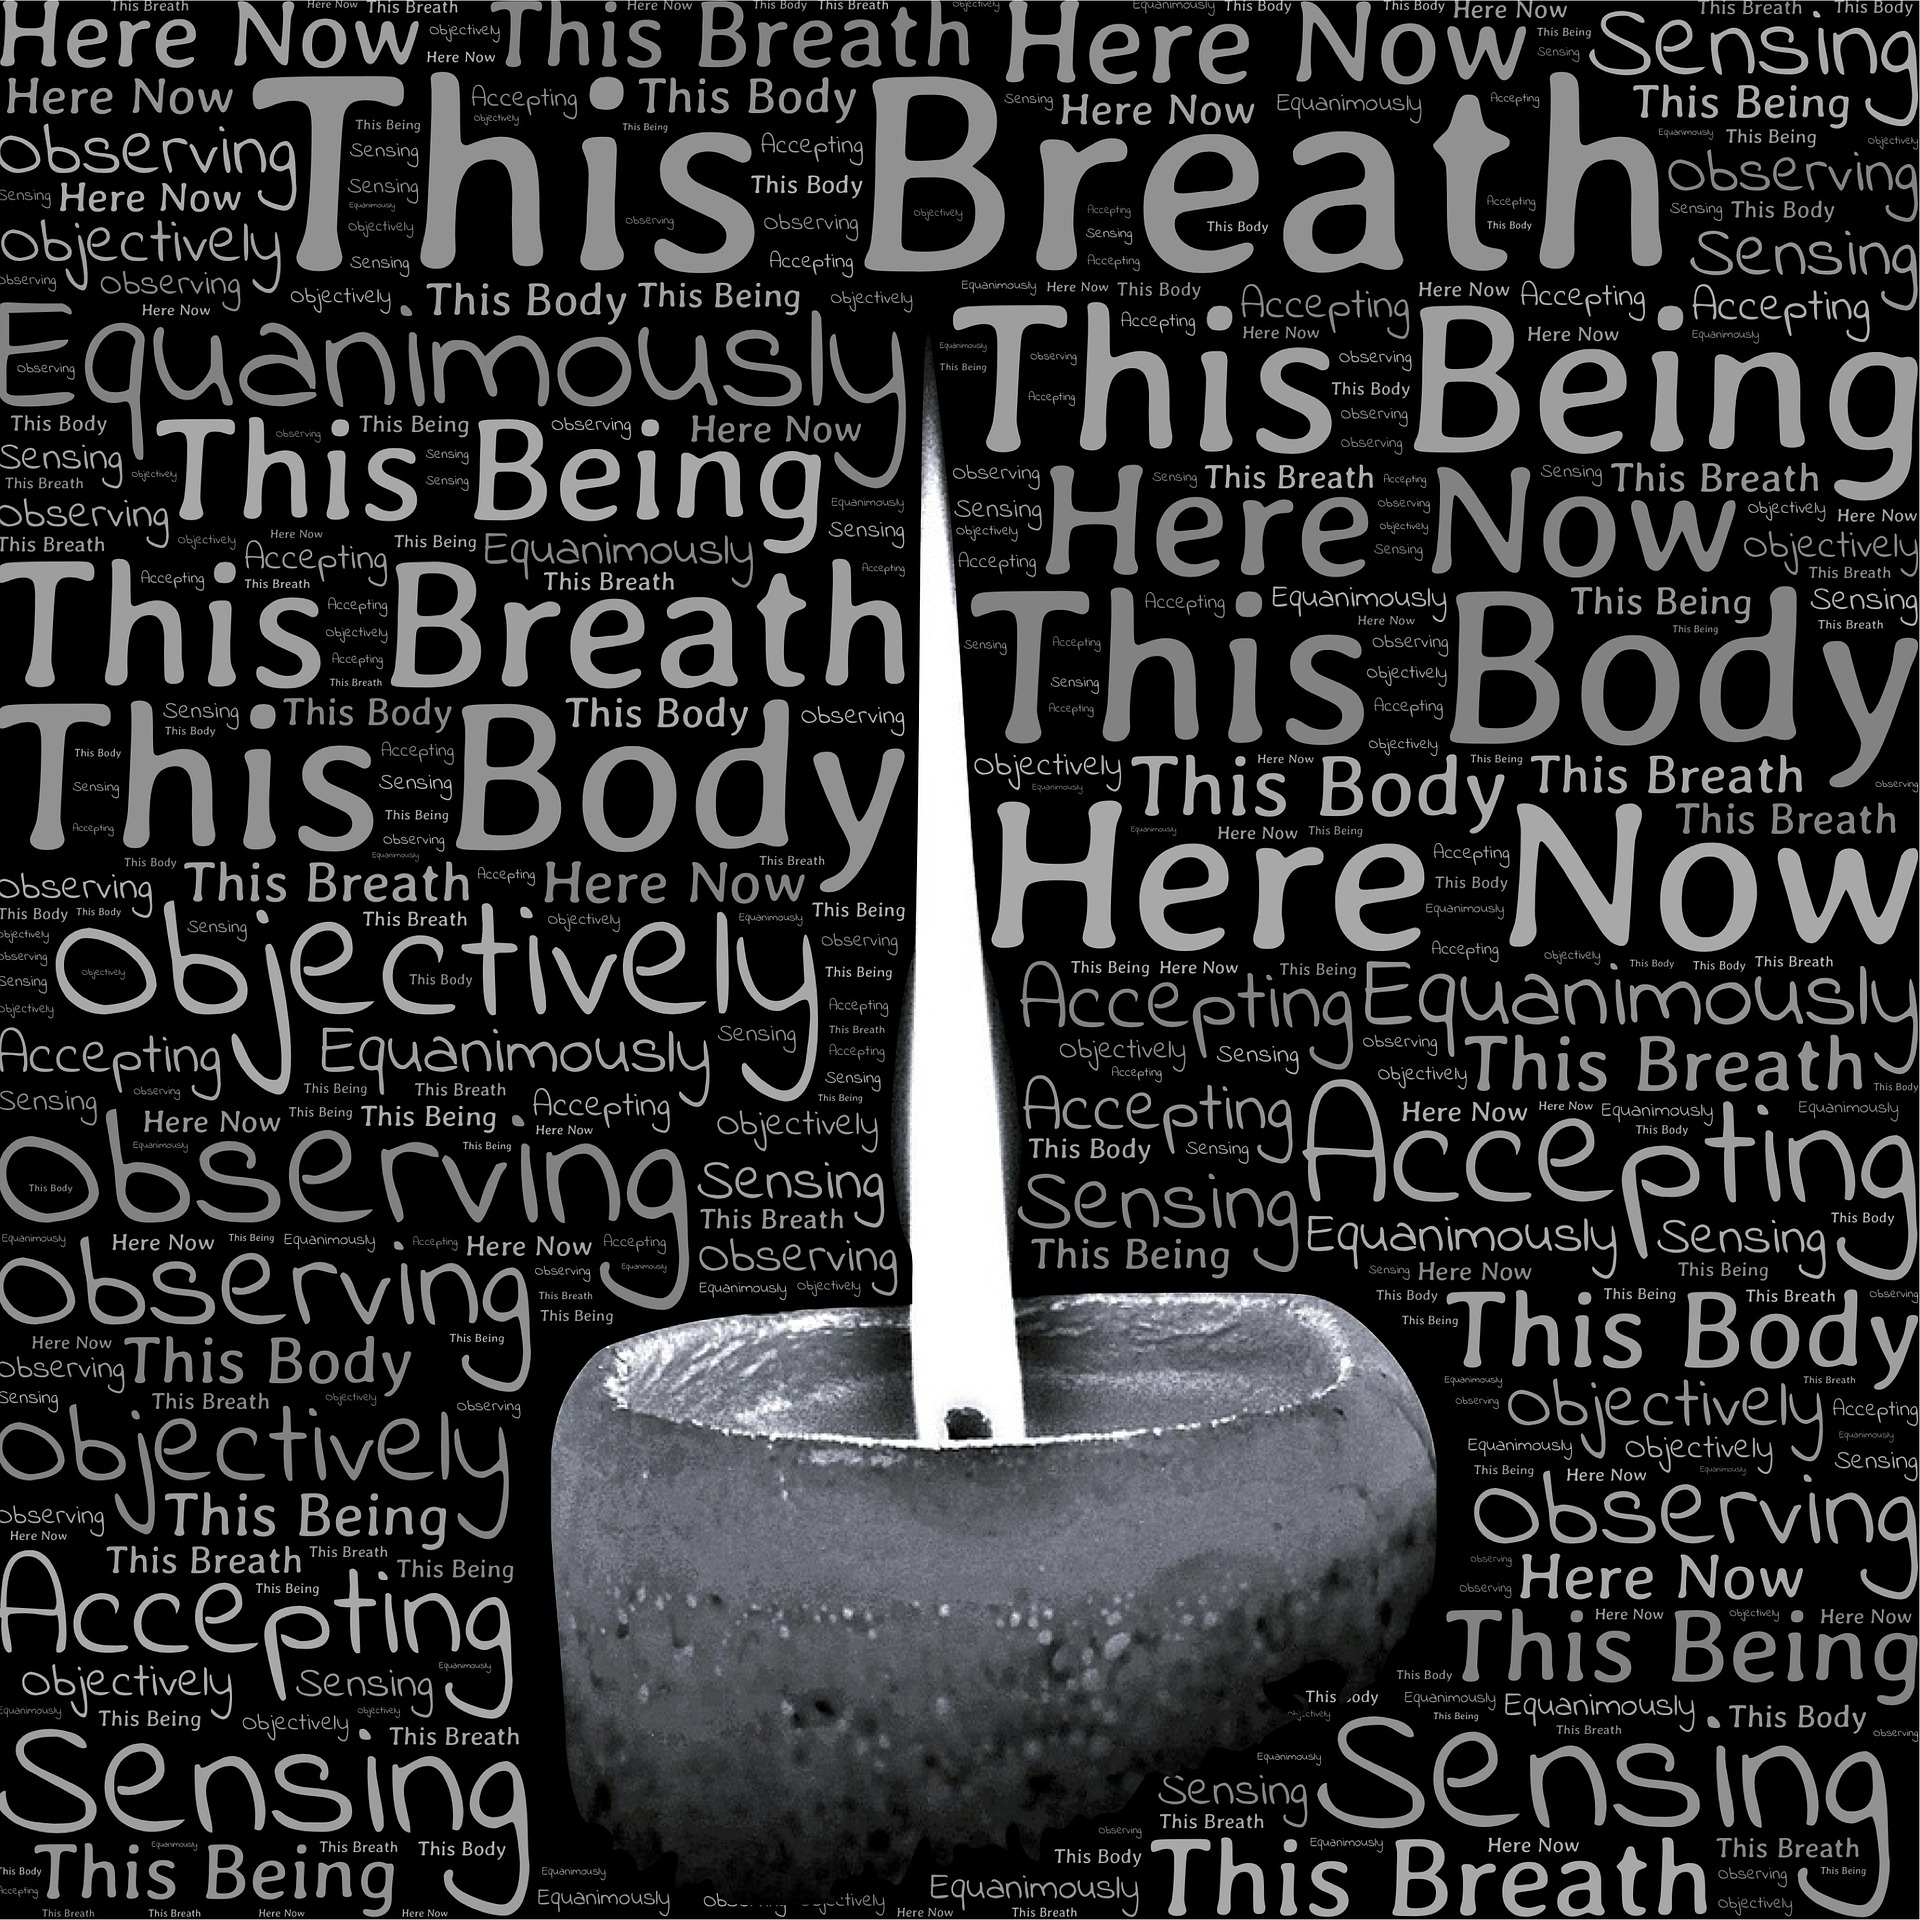 Just Breathe - Meditation, La Luz Therapy www.laluztherapy.com Lucy Toppetta